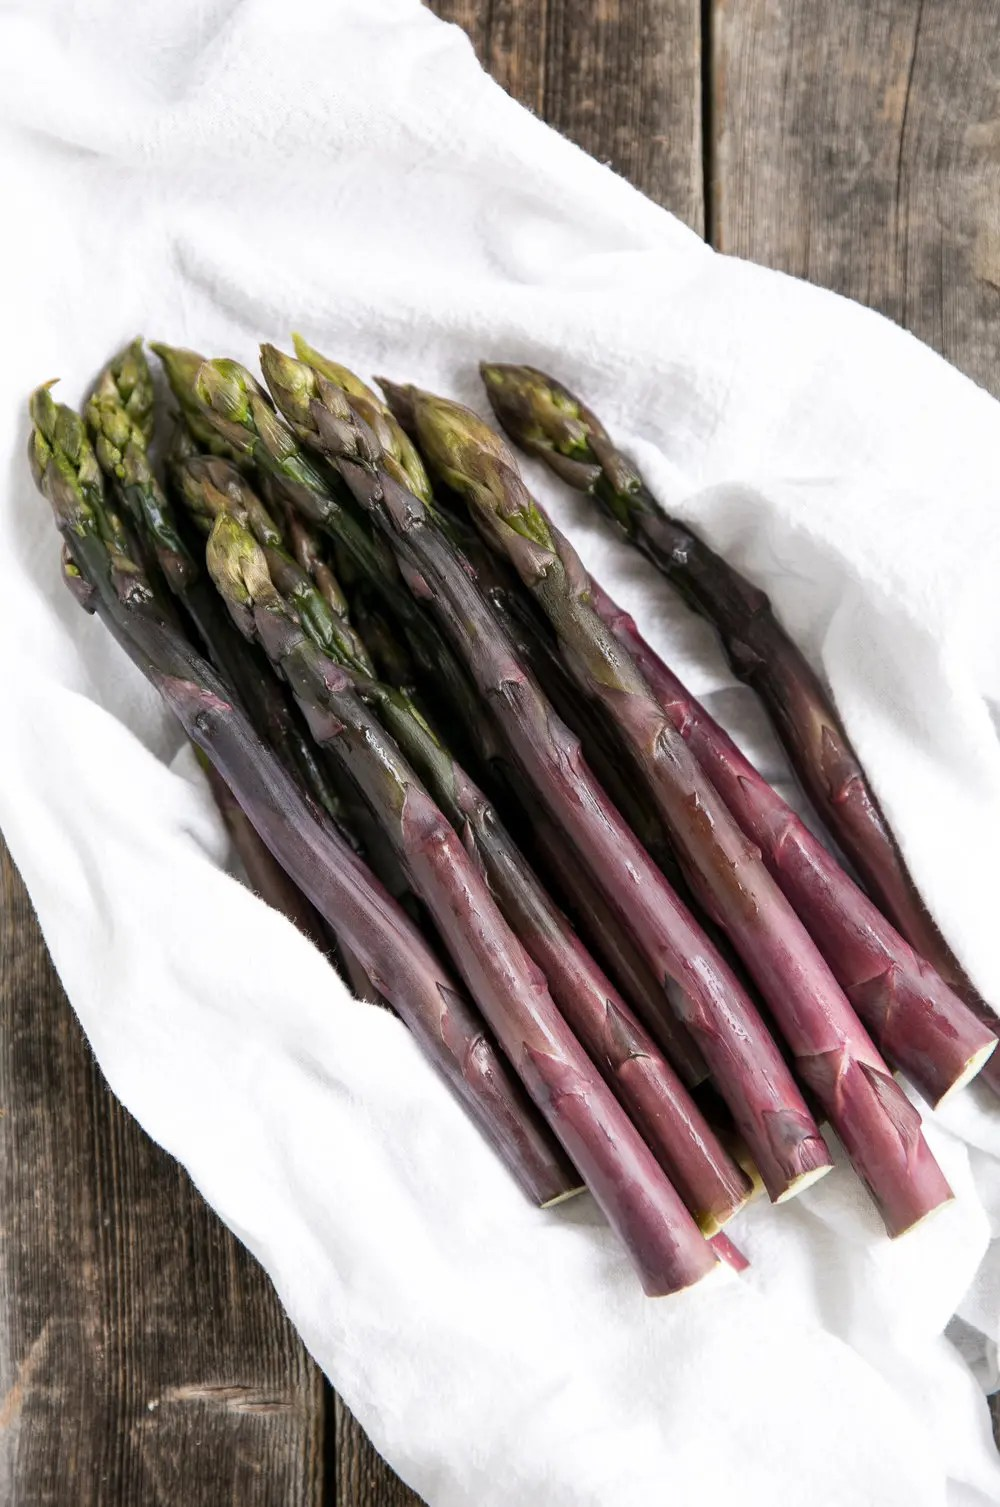 Sauteed Purple Asparagus with Kale, Shallots and Toasted Breadcrumbs